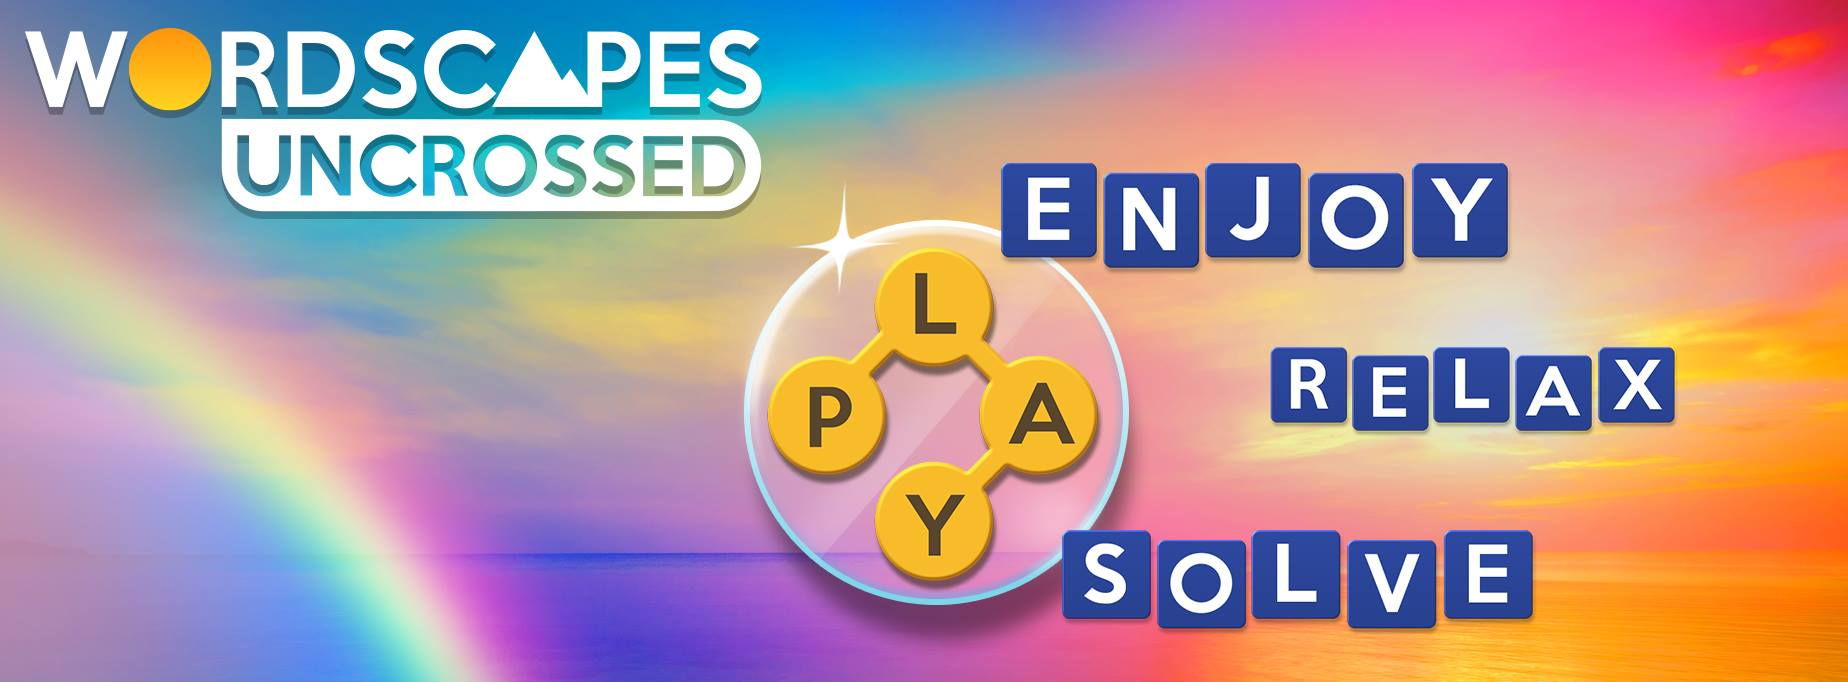 Wordscapes Uncrossed Daily Puzzle September 20 2021 Answers